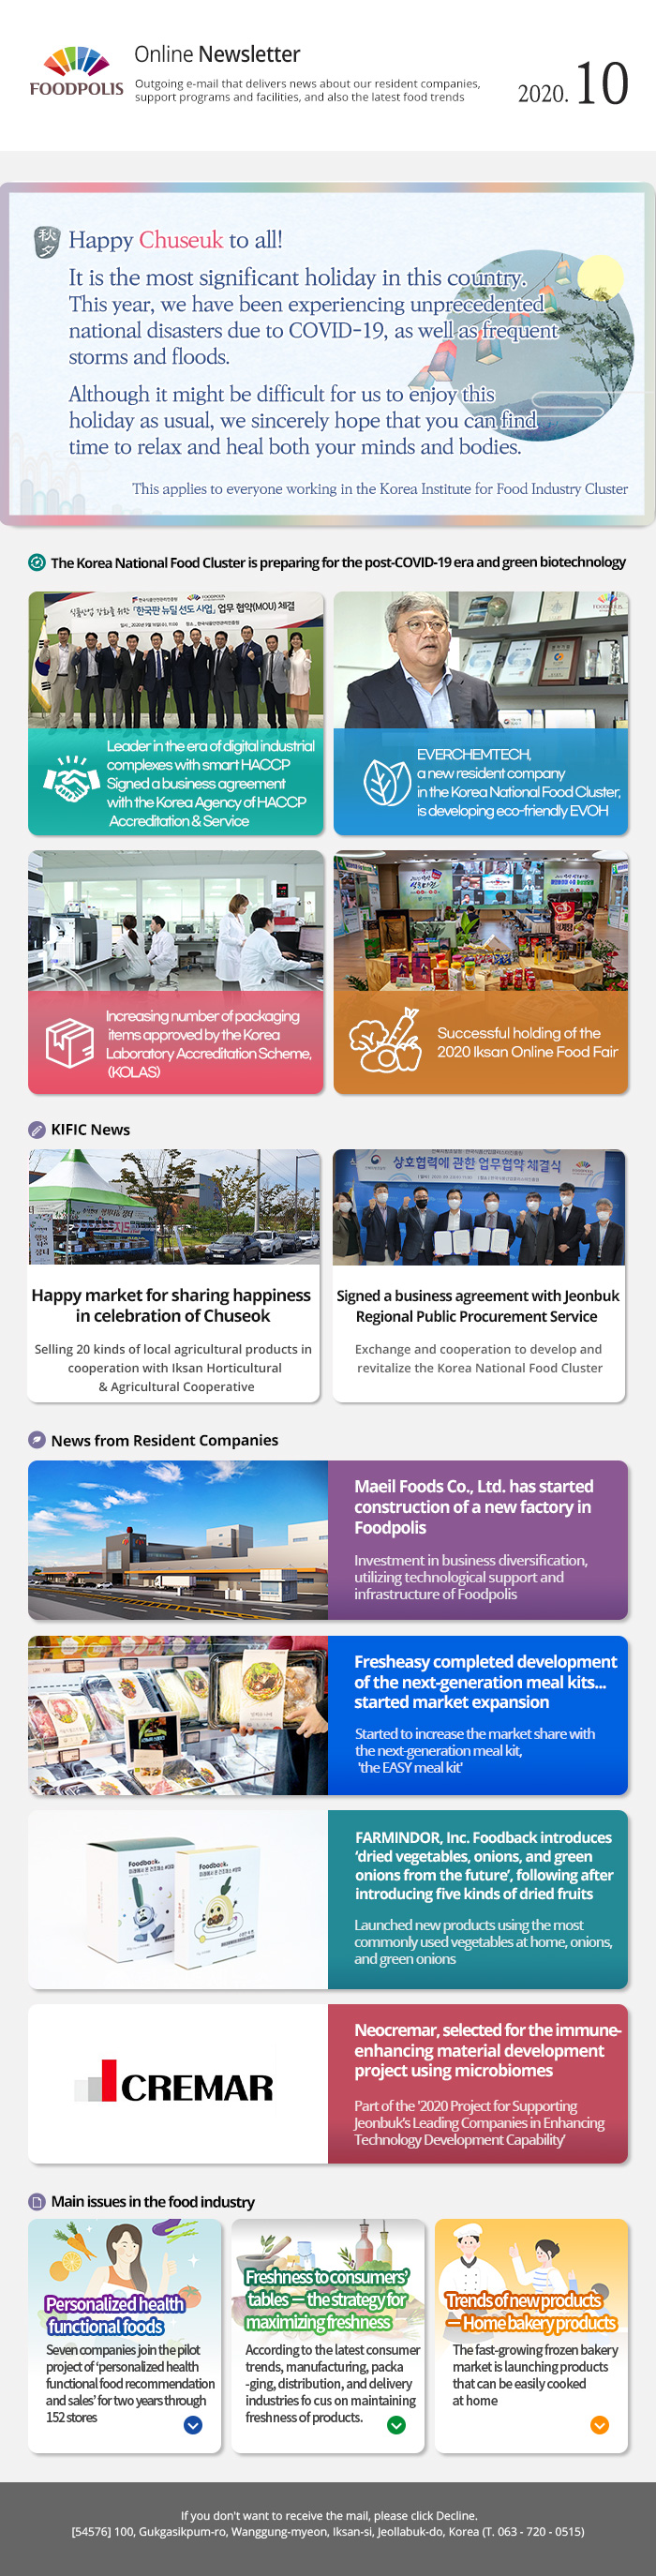 Online Newsletter<br>Outgoing e-mail that delivers news about our resident companies, support programs and facilities, and also the latest food trends. 2020.10<br>Happy Chuseuk to all! It is the most significant holiday in this country. This year, we have been experiencing unprecedented national disasters due to COVID-19, as well as frequent storms and floods. Although it might be difficult for us to enjoy this holiday as usual, we sincerely hope that you can find time to relax and heal both your minds and bodies. This applies to everyone working in the Korea Institute for Food Industry Cluster<br>The Korea National Food Cluster is preparing for the post-COVID-19 era and green biotechnology